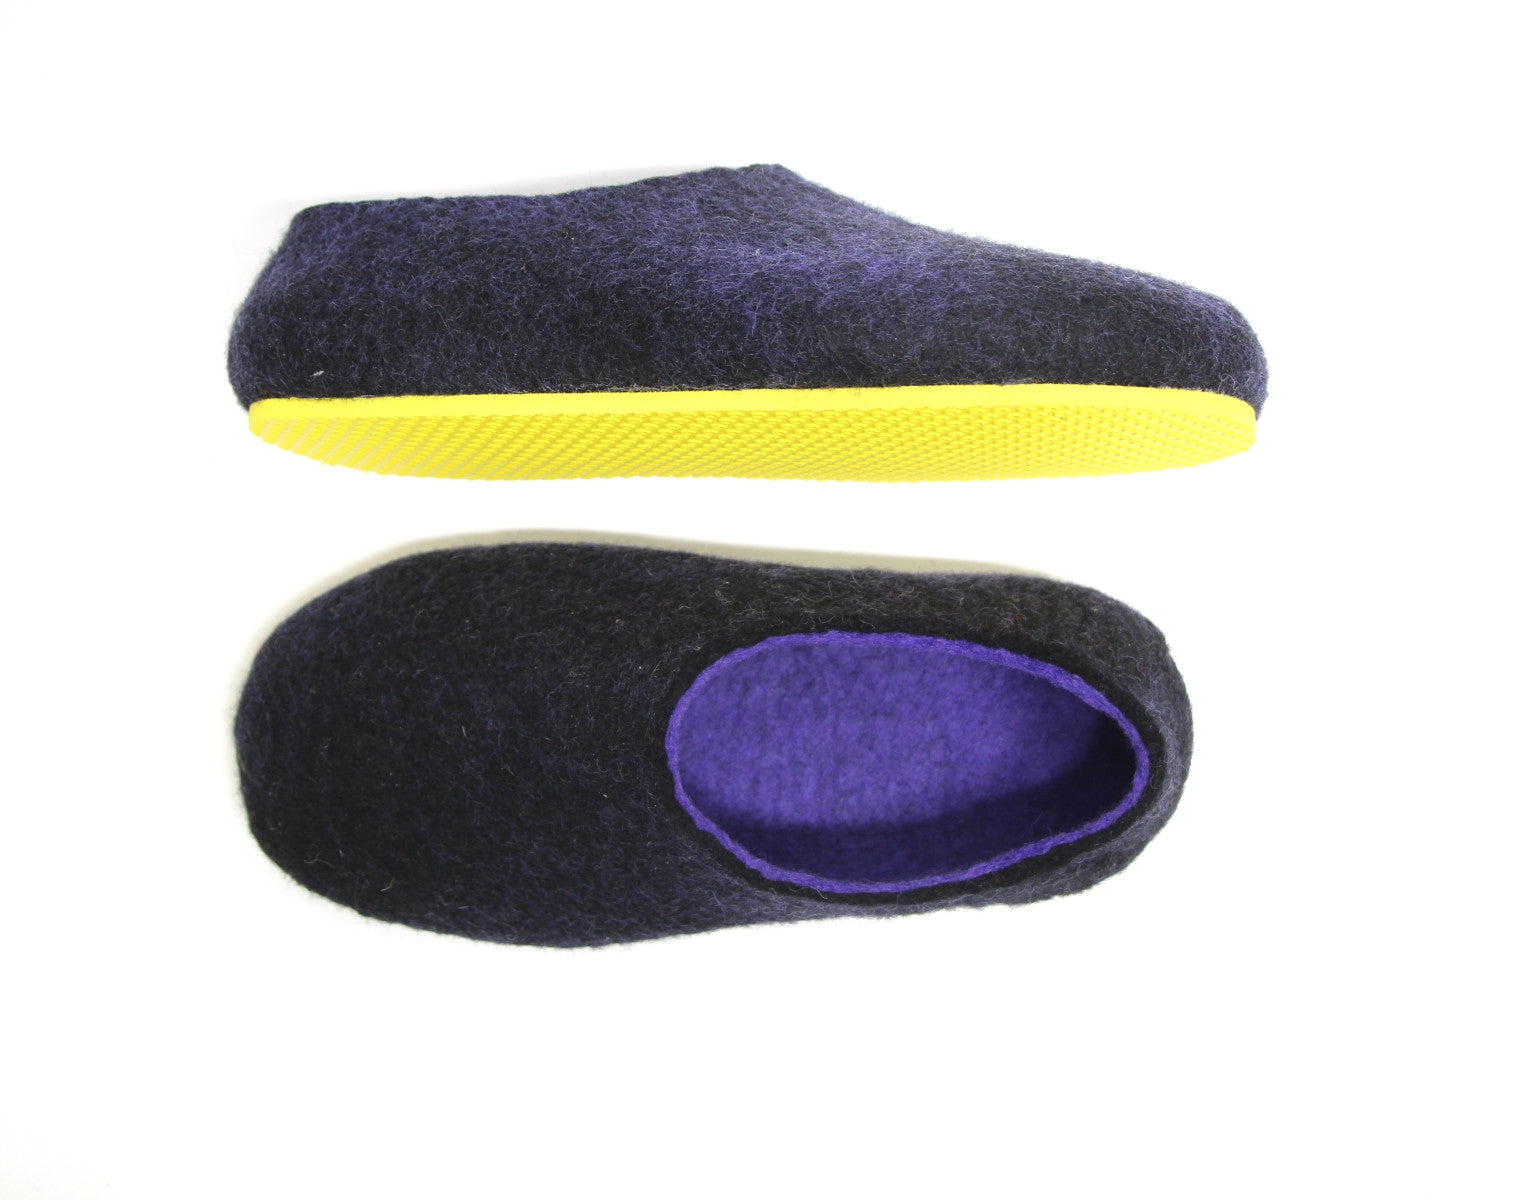 Womens Two Tone Felted Slippers Black Indigo Contrast Sole - Wool Walker  - 2